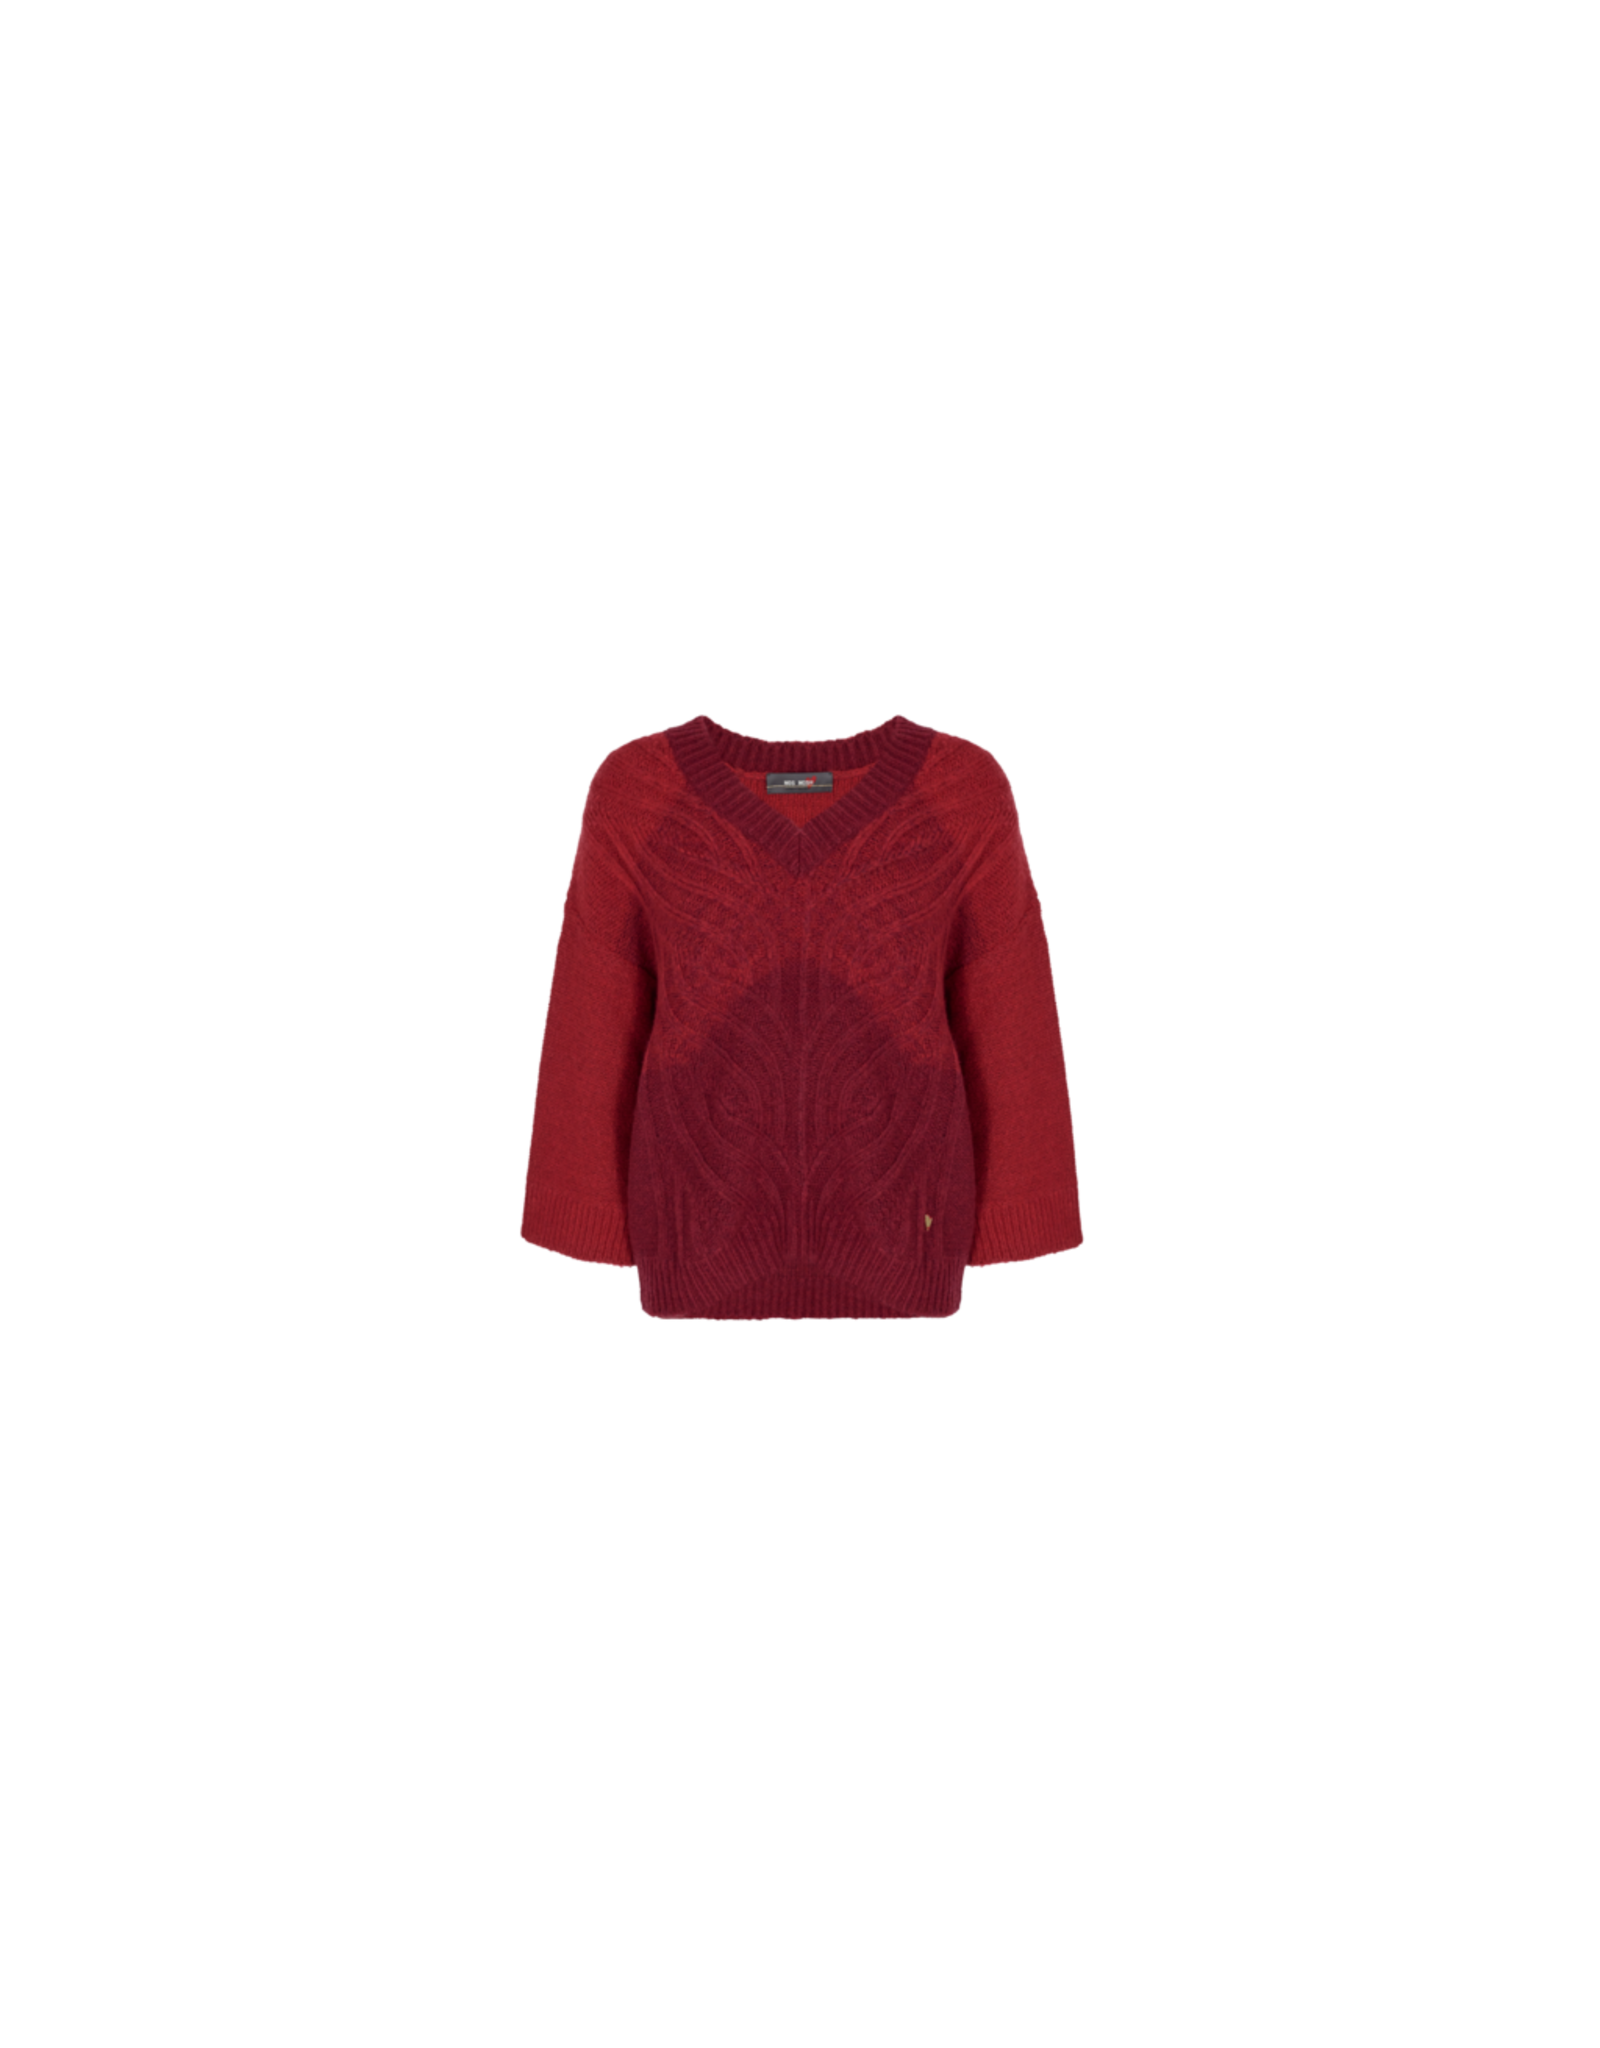 Mos Mosh Jenner Cable Knit